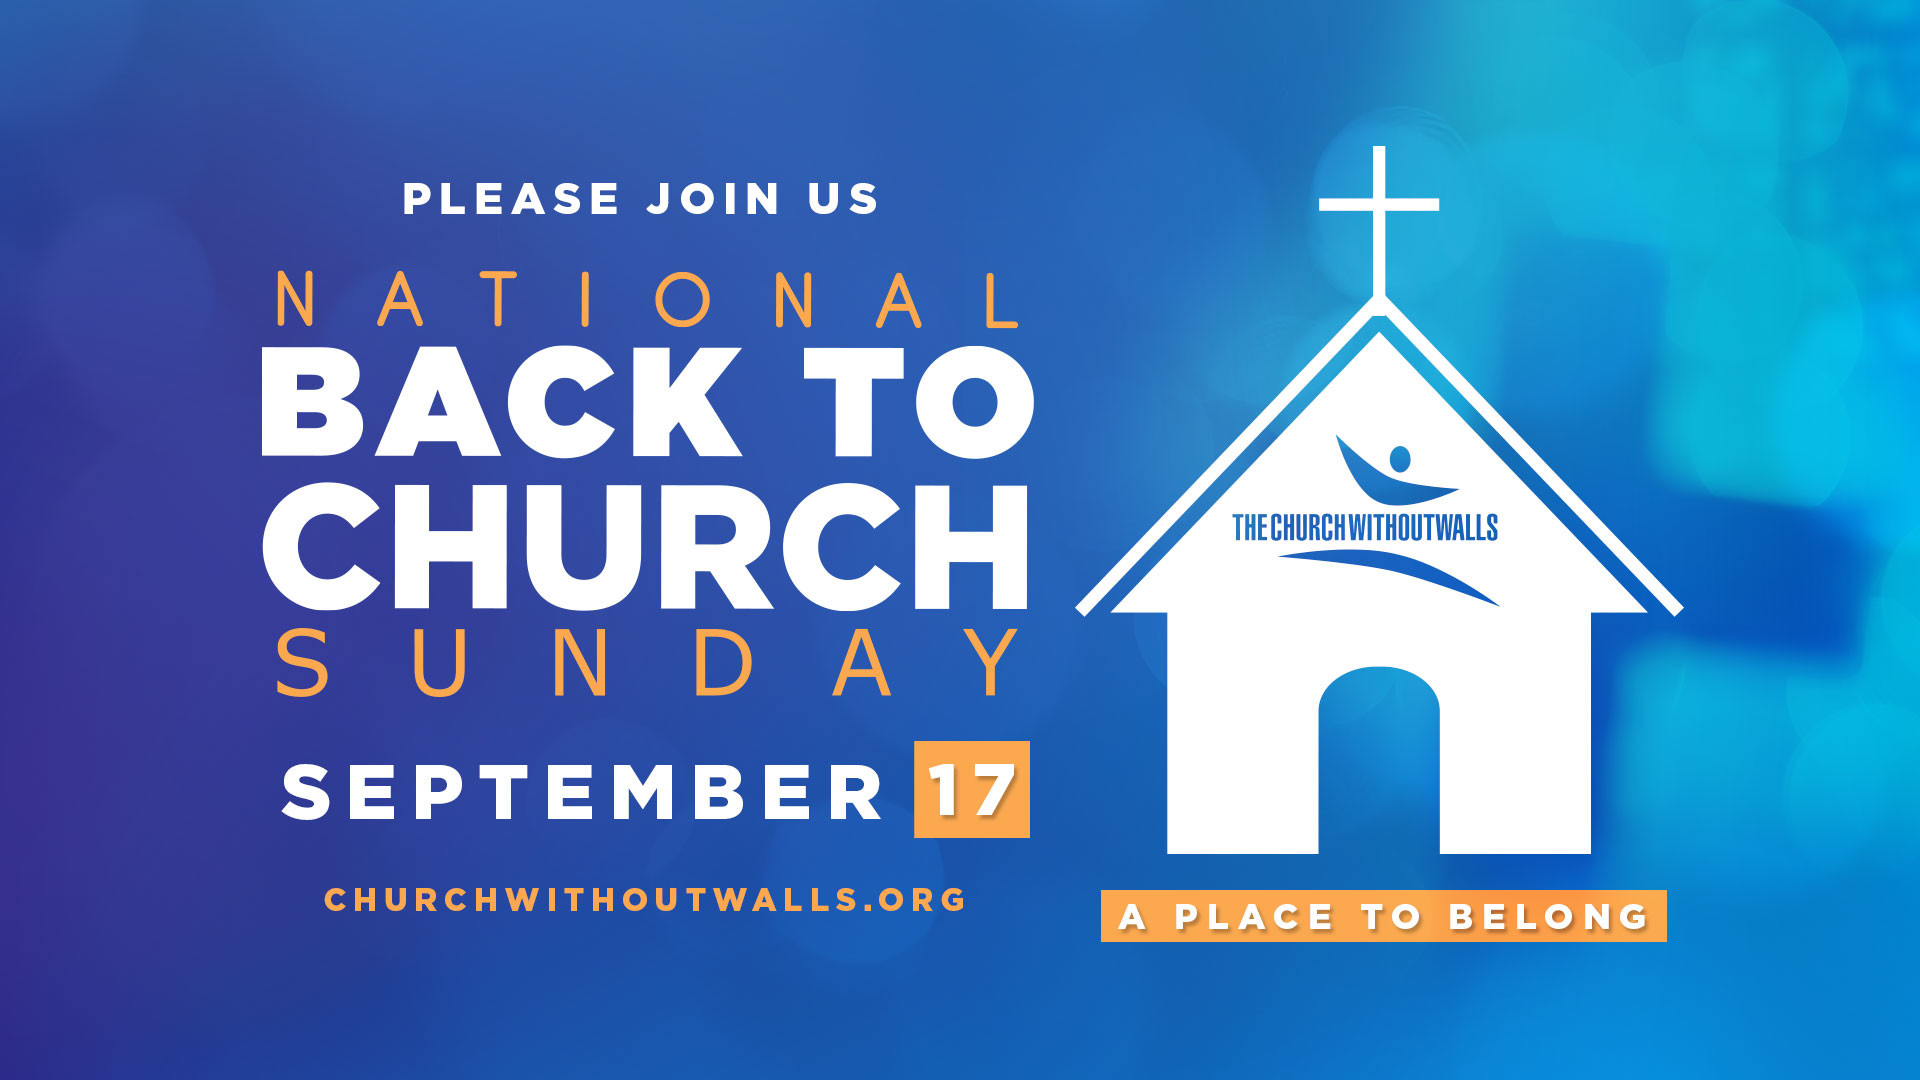 Come Back to Church with us! An overload of summer activities can often  interrupt your Sunday worship, Bible Study, and ministry work.